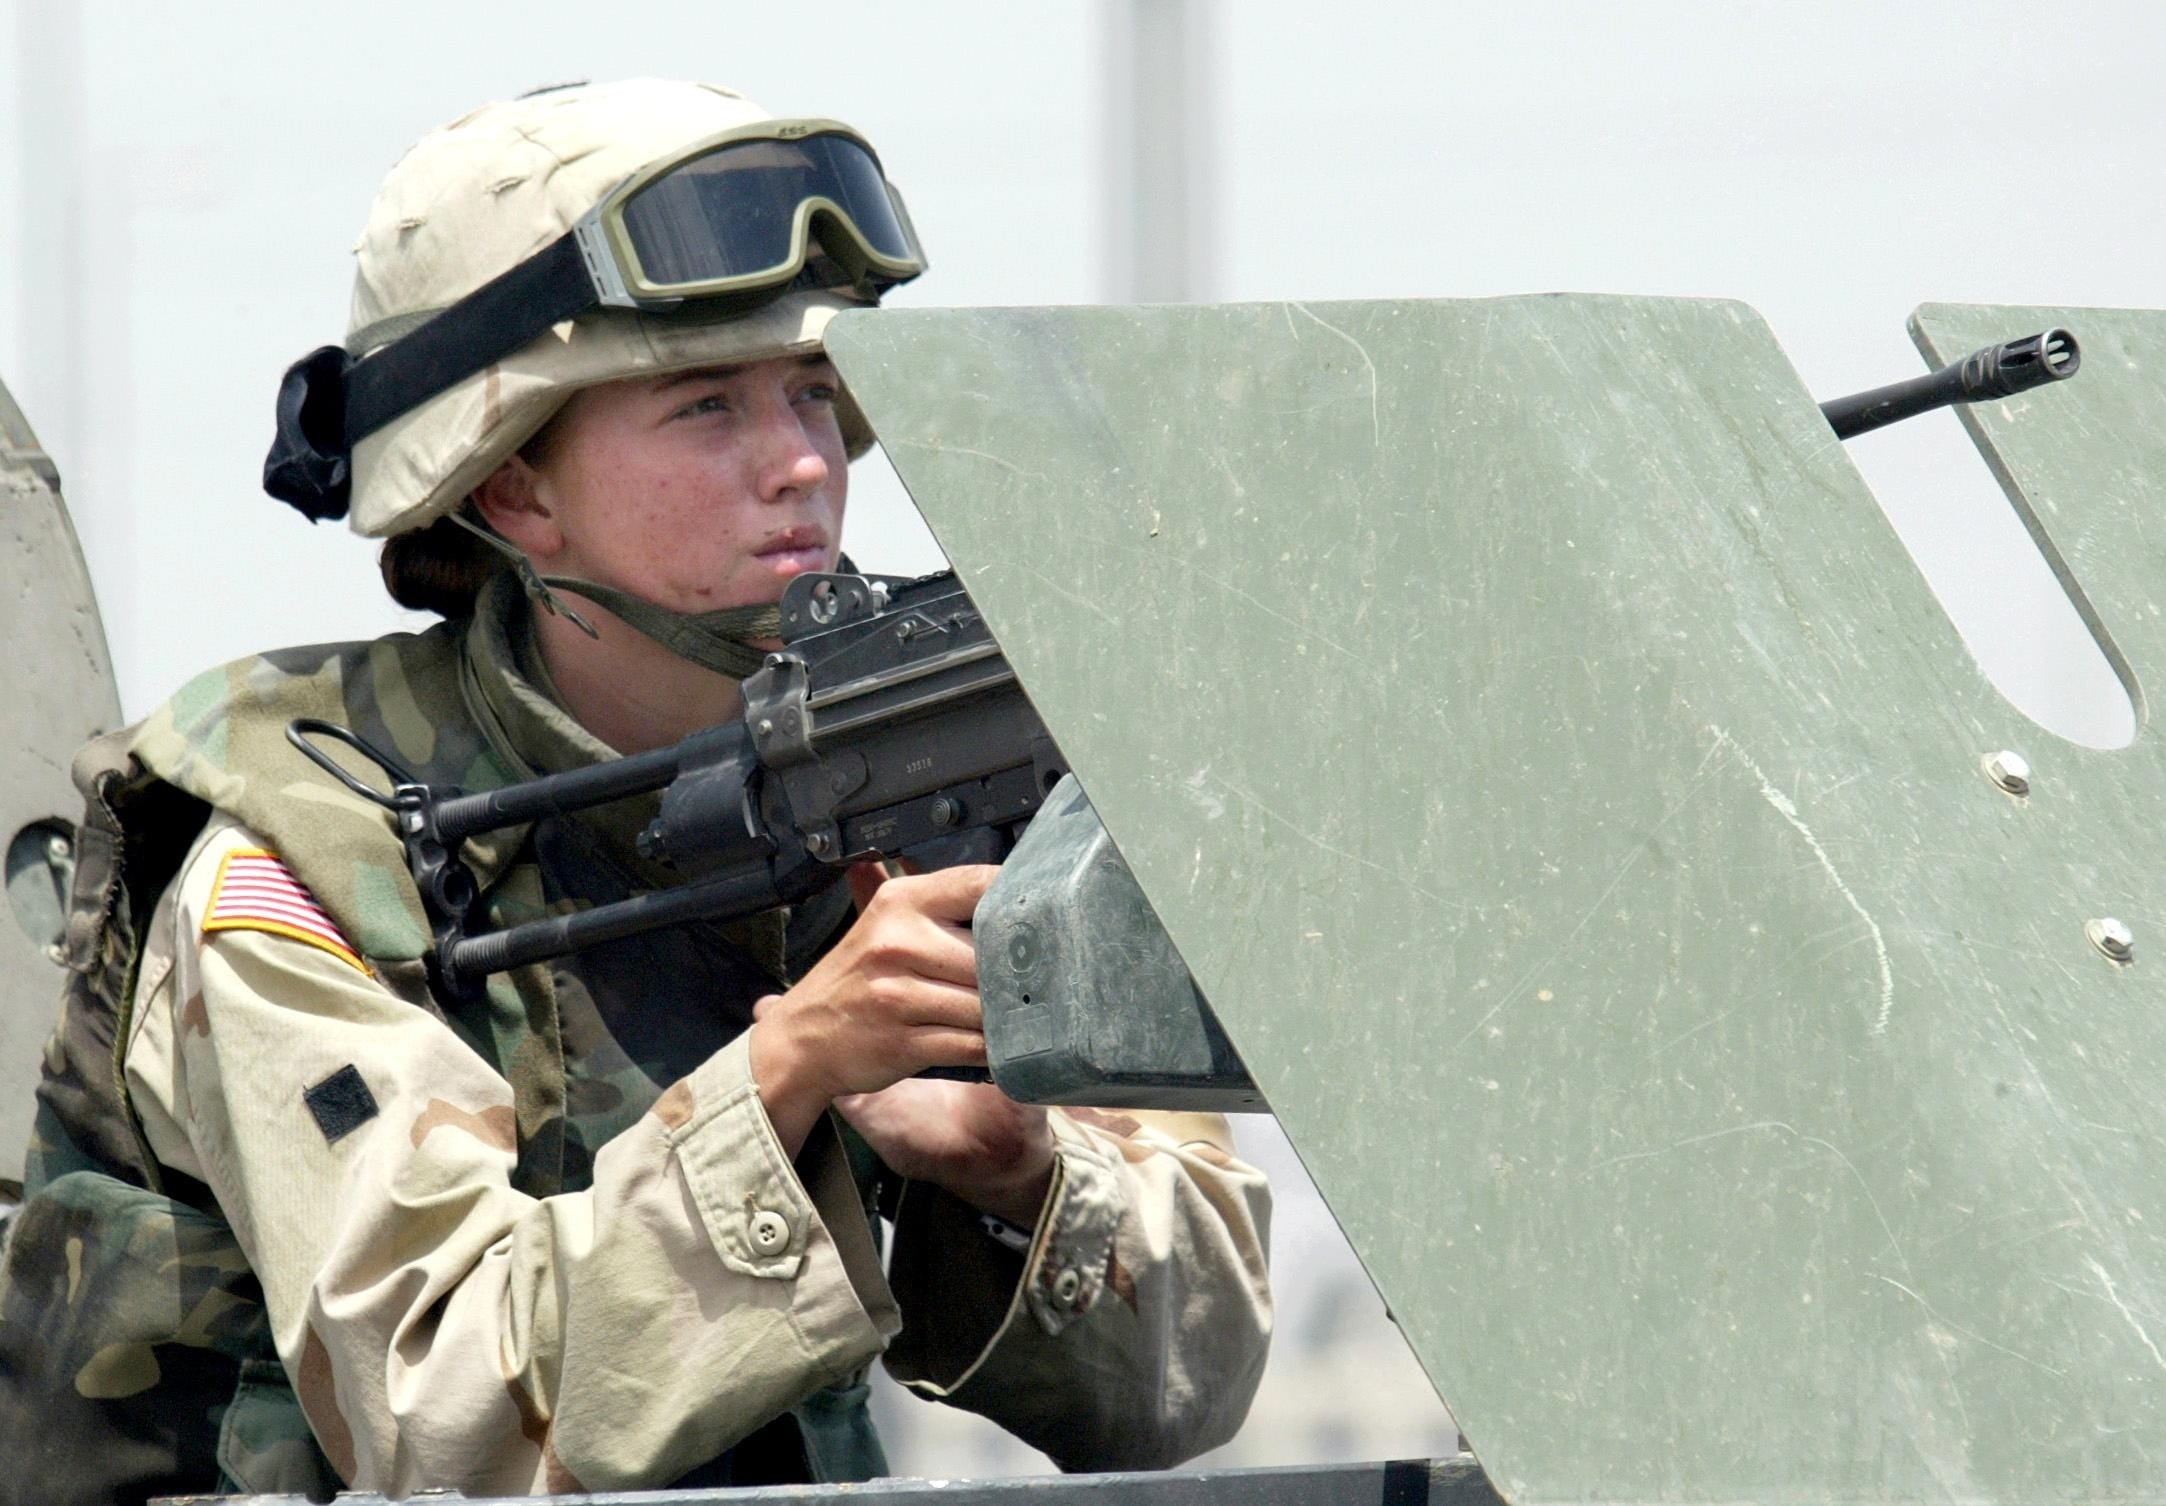 with-women-in-combat-roles-a-federal-court-rules-the-male-only-draft-unconstitutional